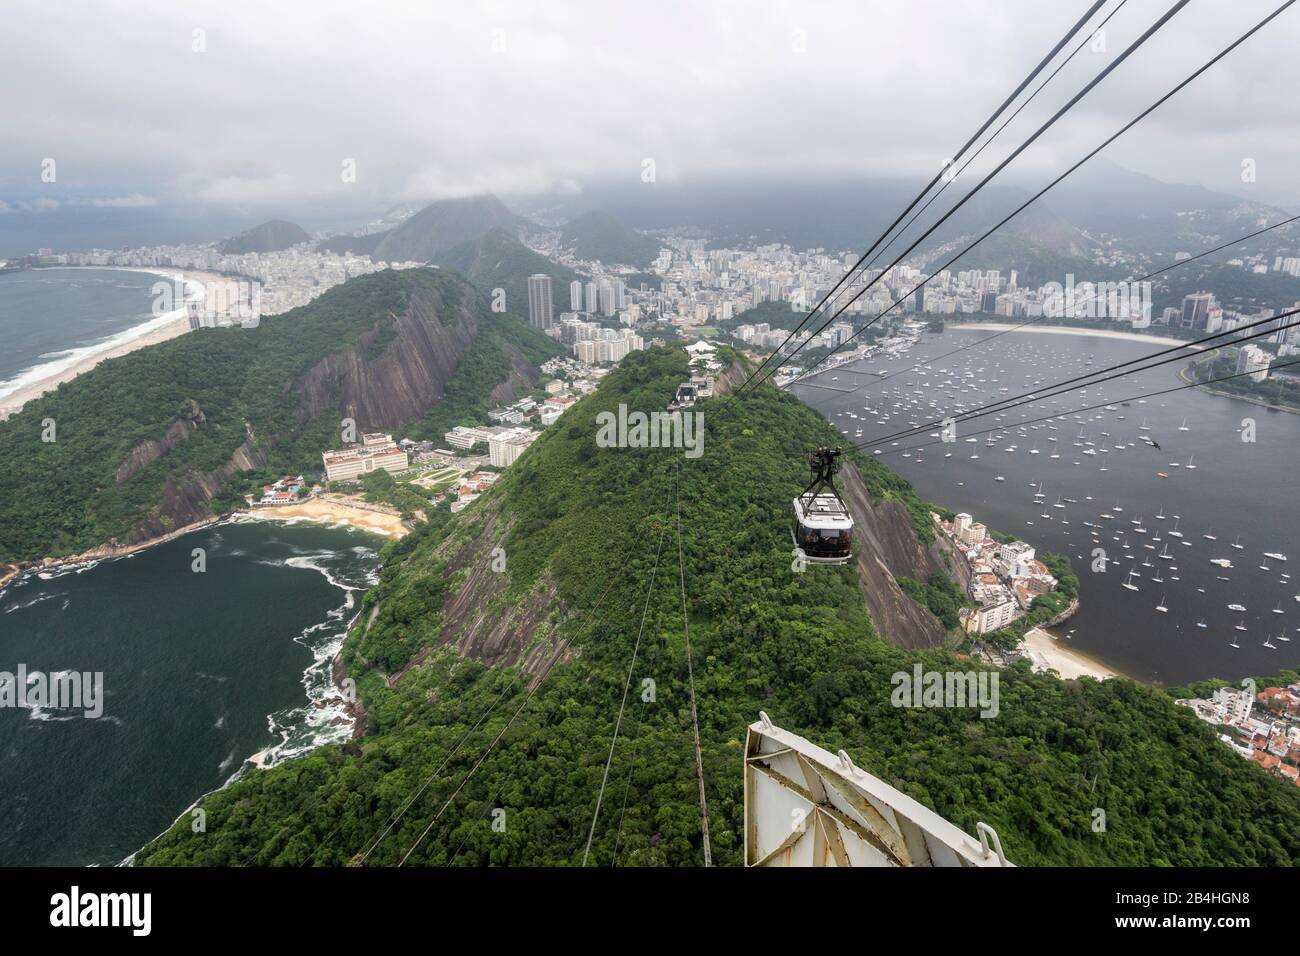 Beautiful view from Sugar Loaf cable car to city landscape, Rio de Janeiro, Brazil Stock Photo